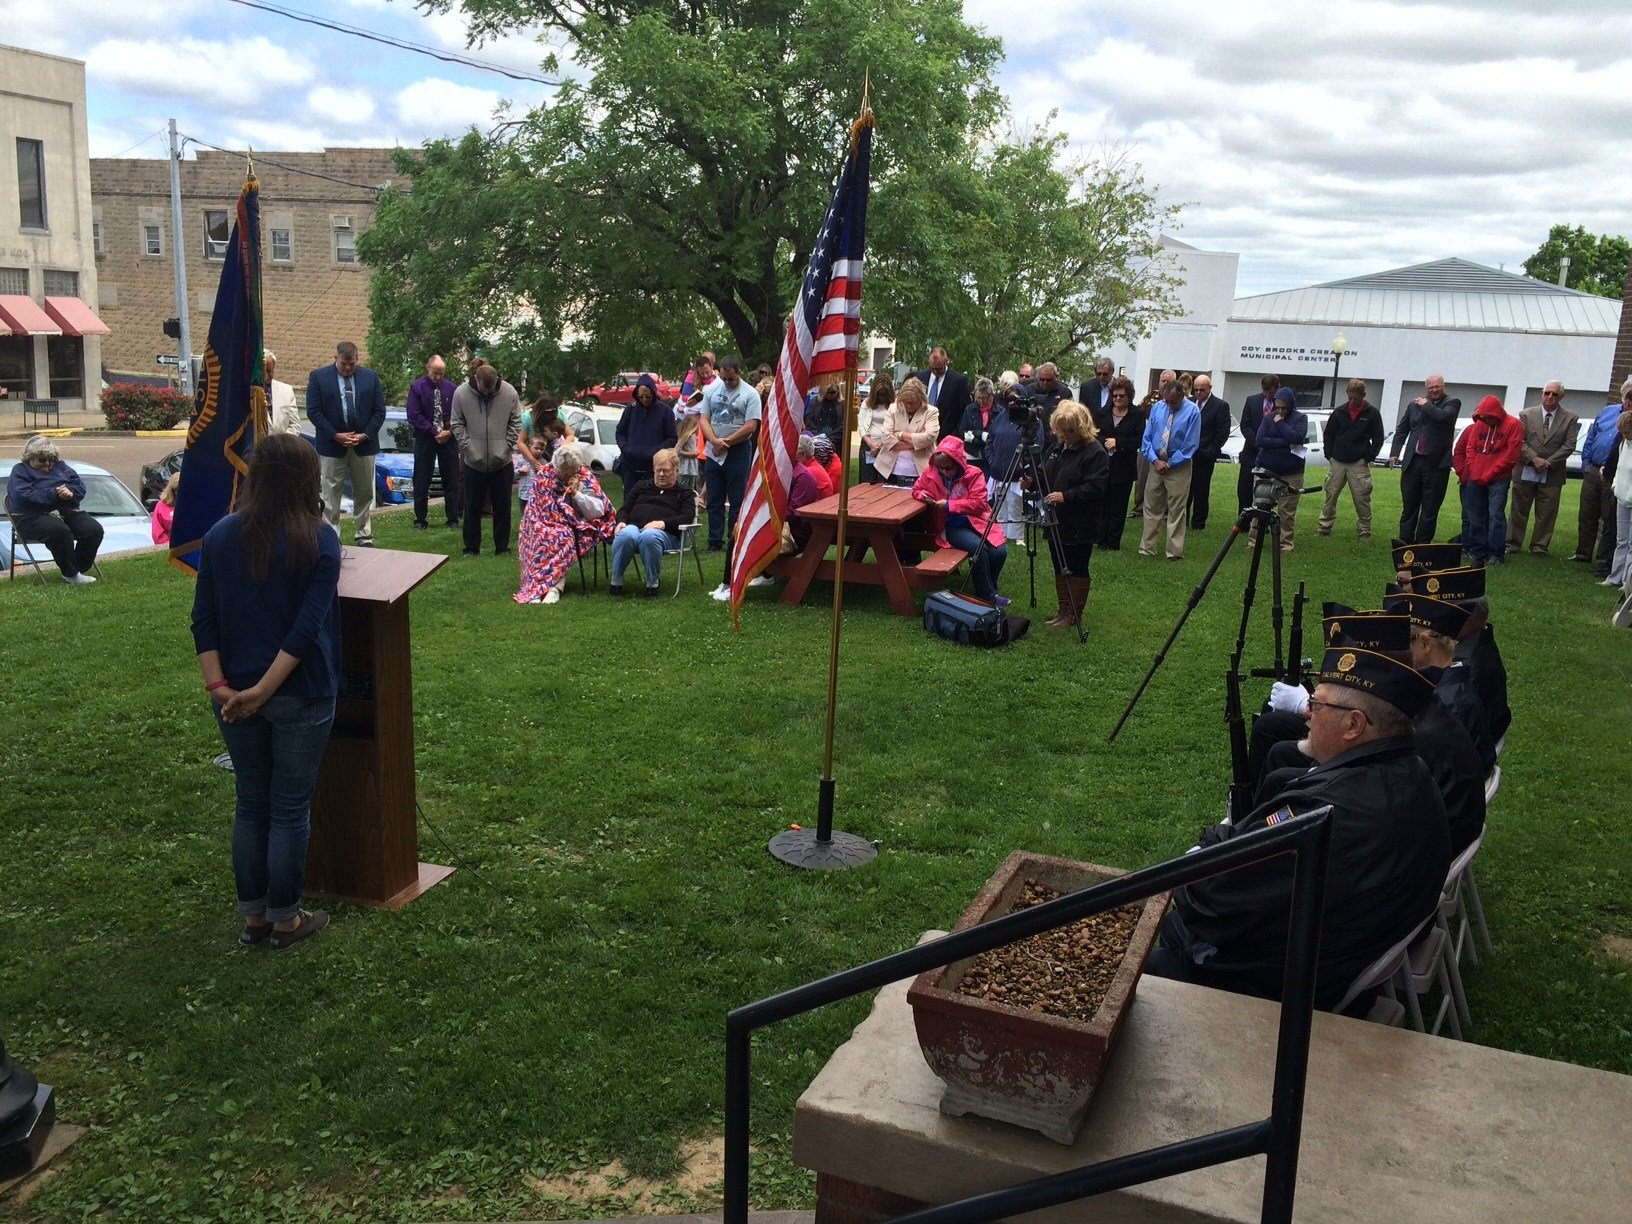 People observe the National Day of Prayer at a service in Marshall County.